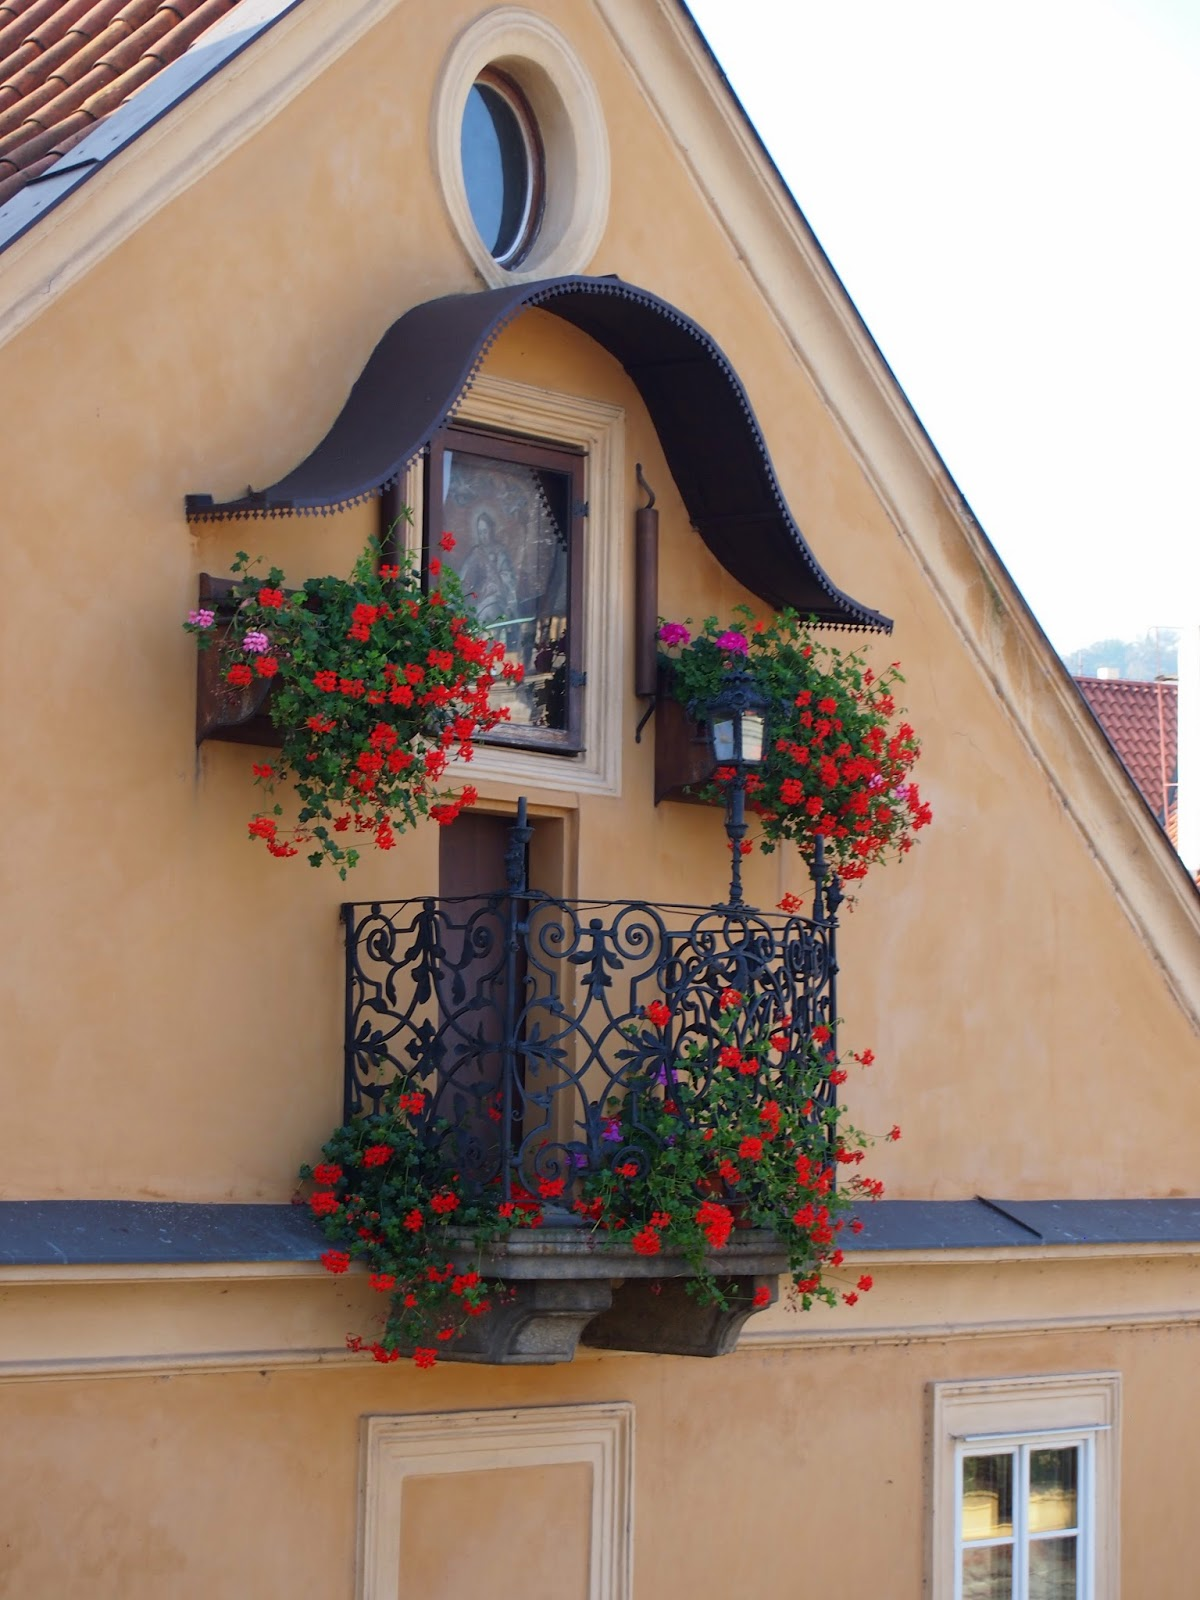 A flowery windowsill in Prague.